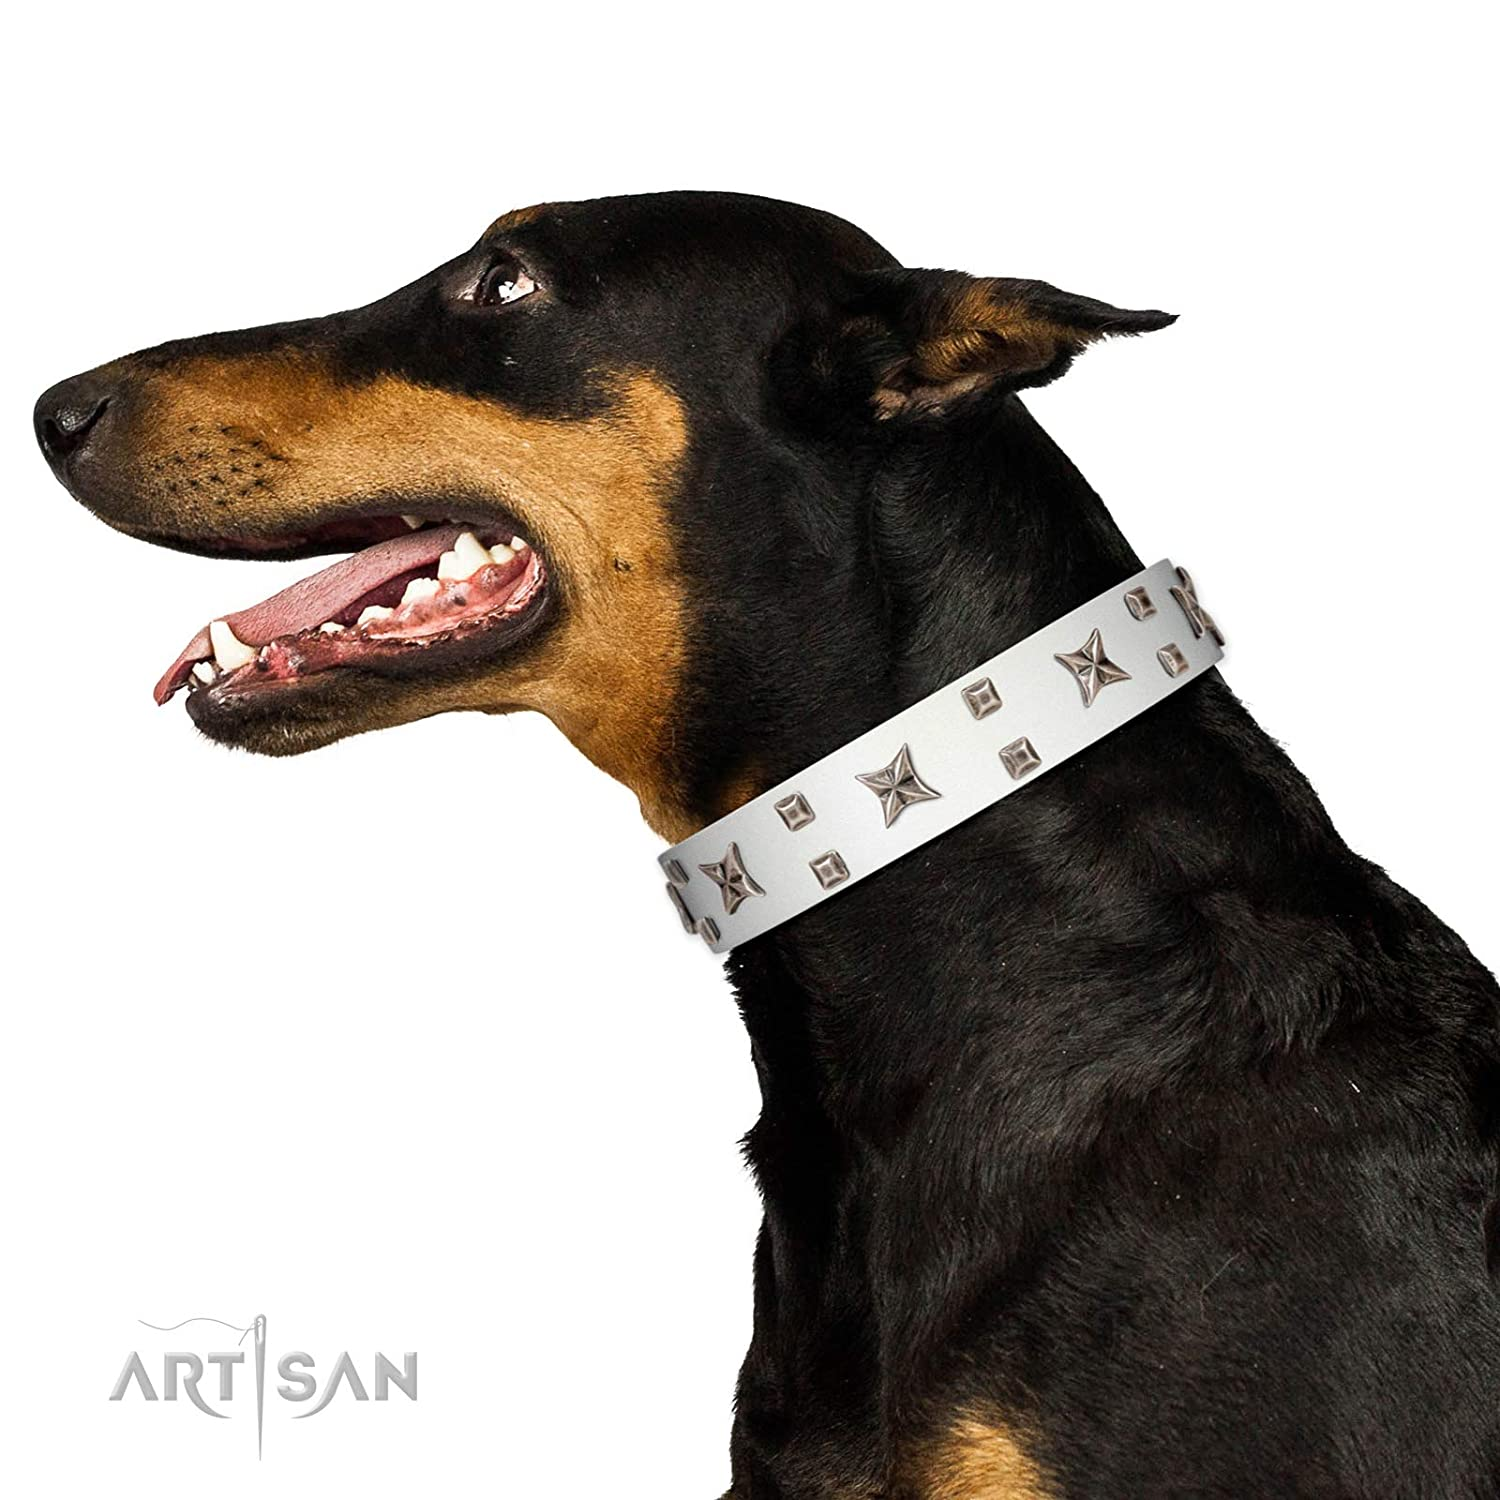 Fits for 26 inch (65cm) dog's neck size FDT Artisan 26 inch Star Patrol White Leather Dog Collar Adorned with Studs and Stars 1 1 2 inch (40 mm) Wide